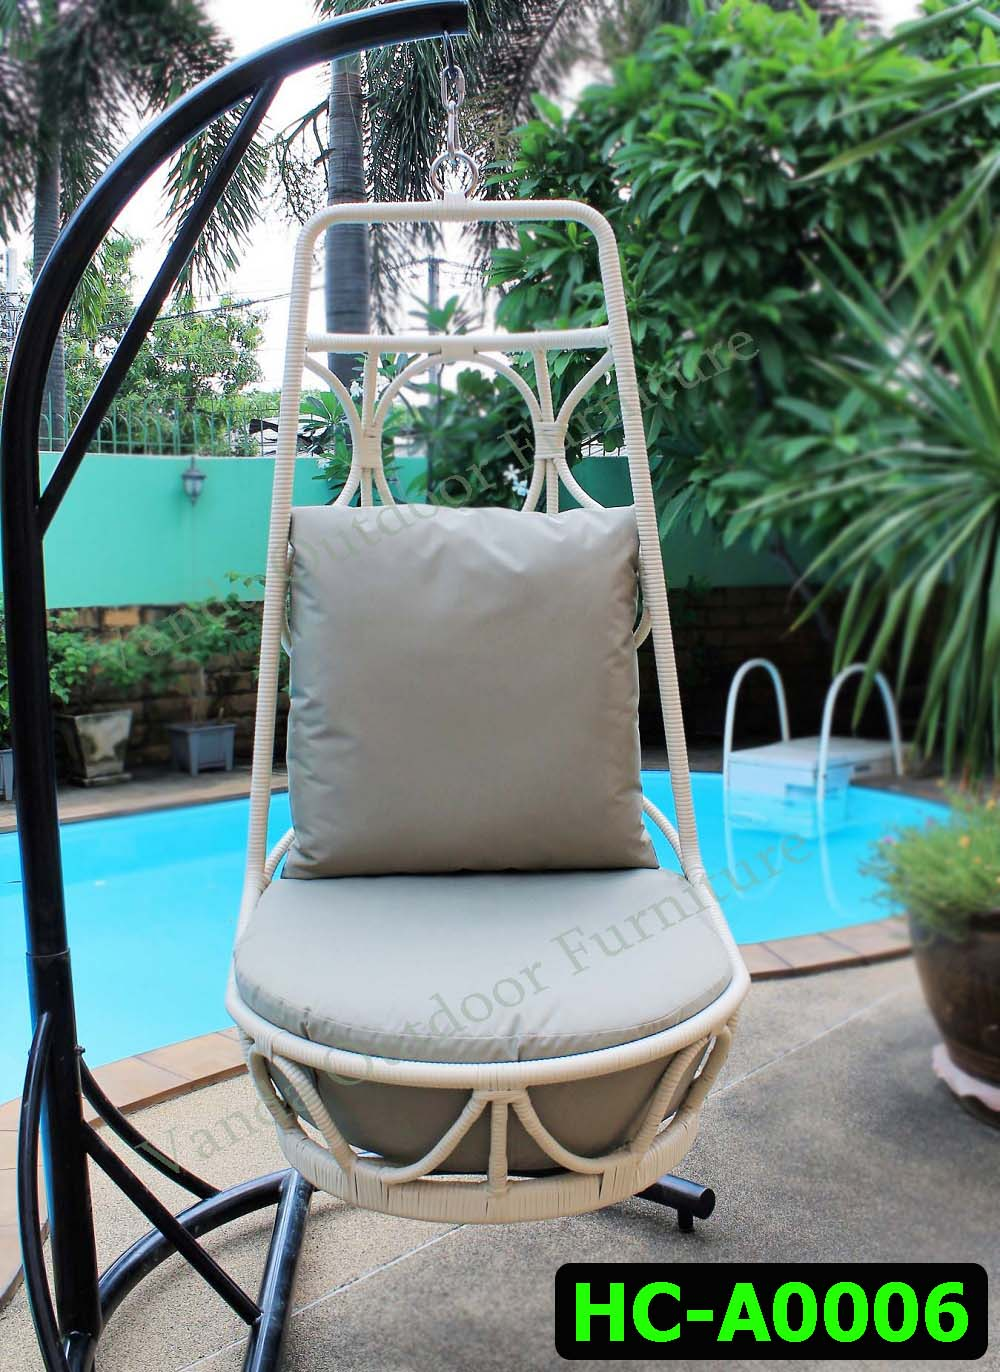 Rattan Swing Chair Product code HC-A0006